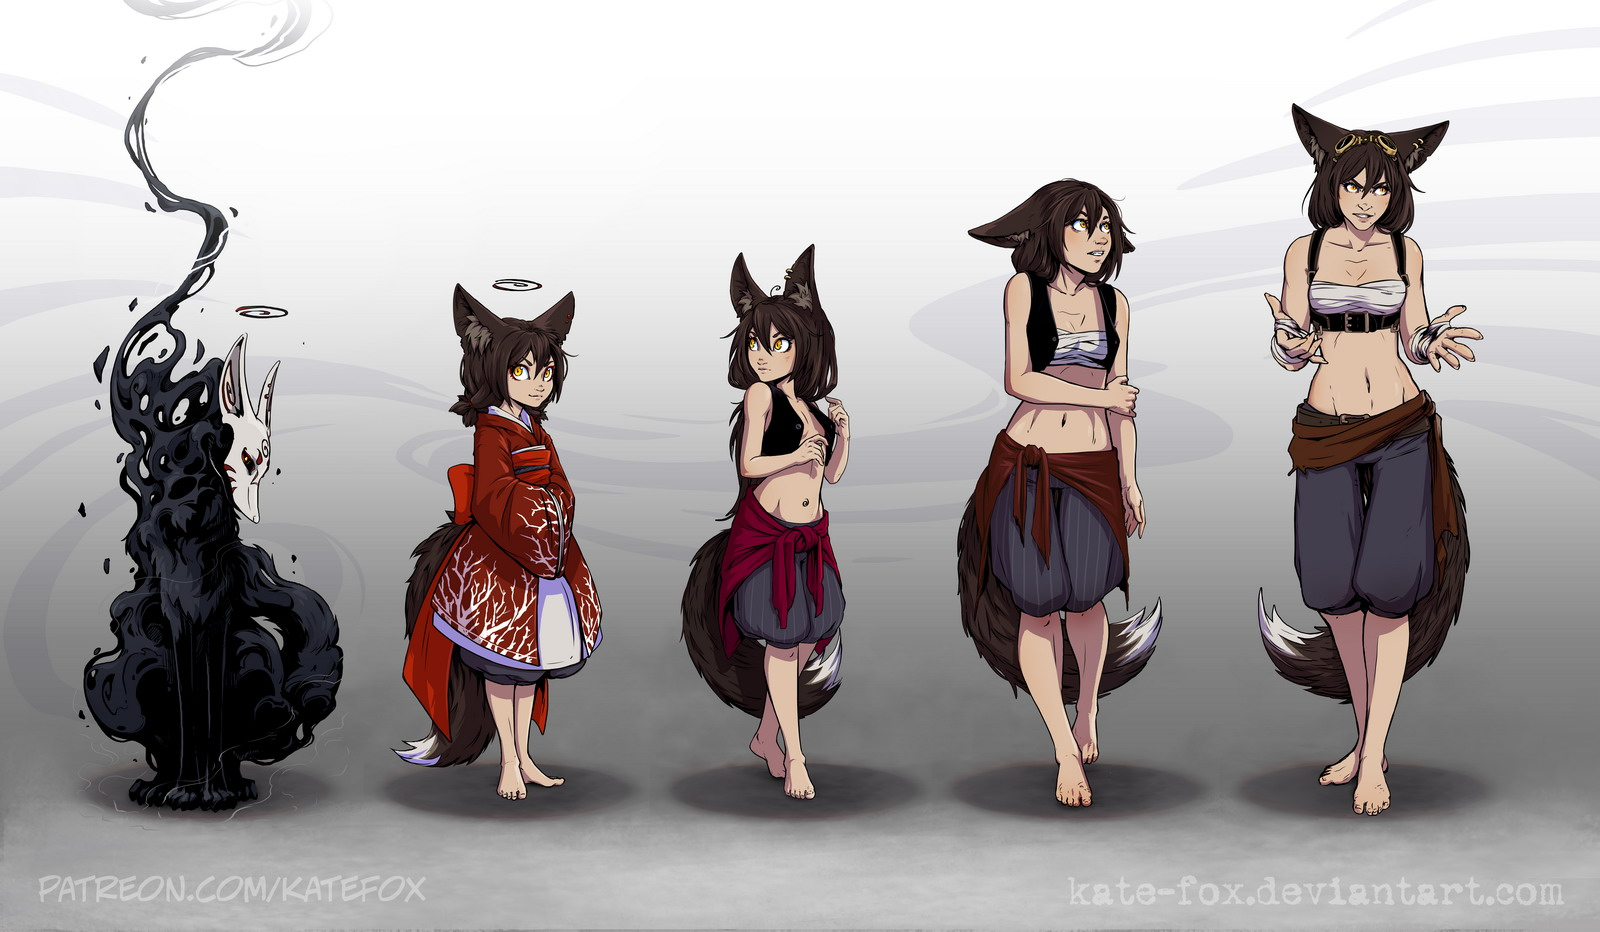 Evolution by Kate-FoX on DeviantArt